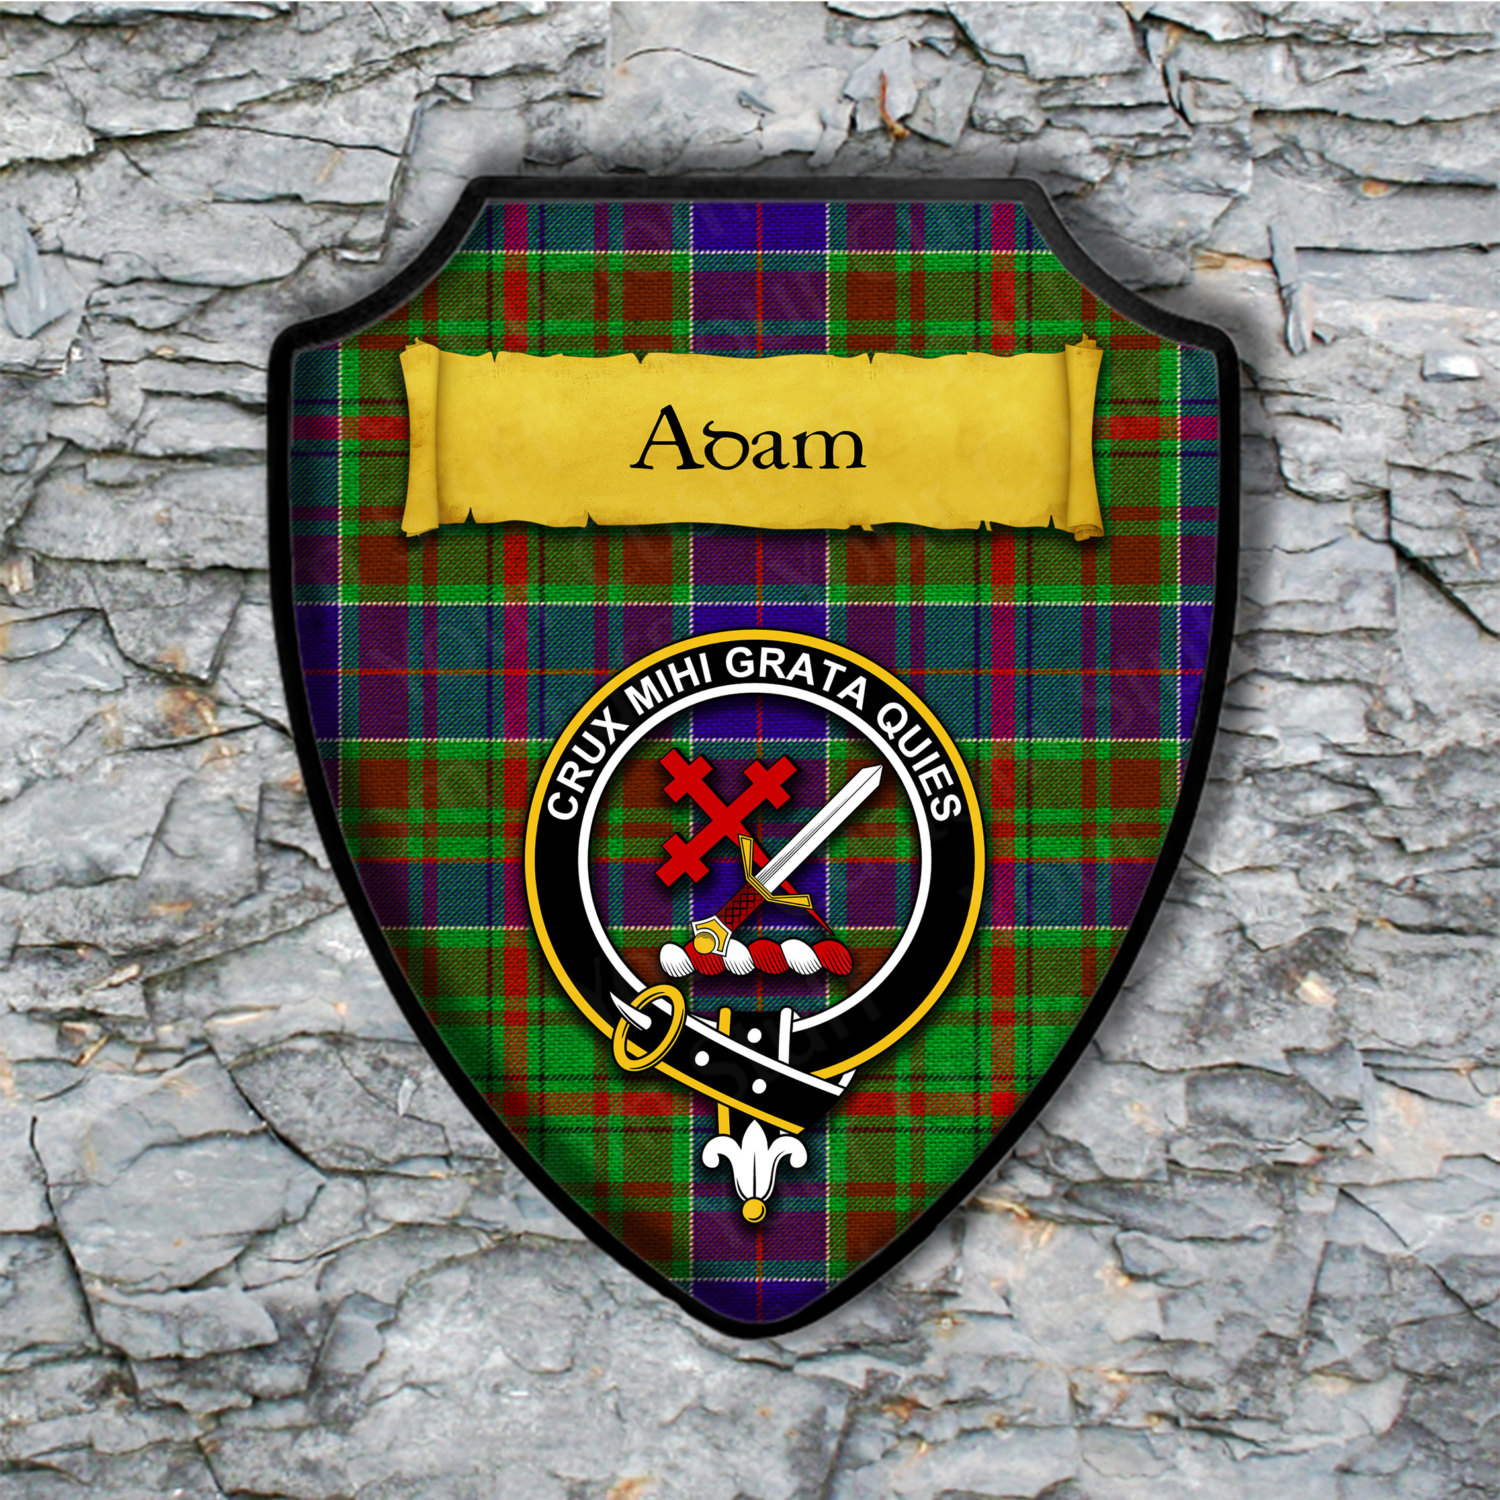 Adam or Adams Shield Plaque with Scottish Clan Coat of Arms Badge on Clan Plaid Tartan Background Wall Art